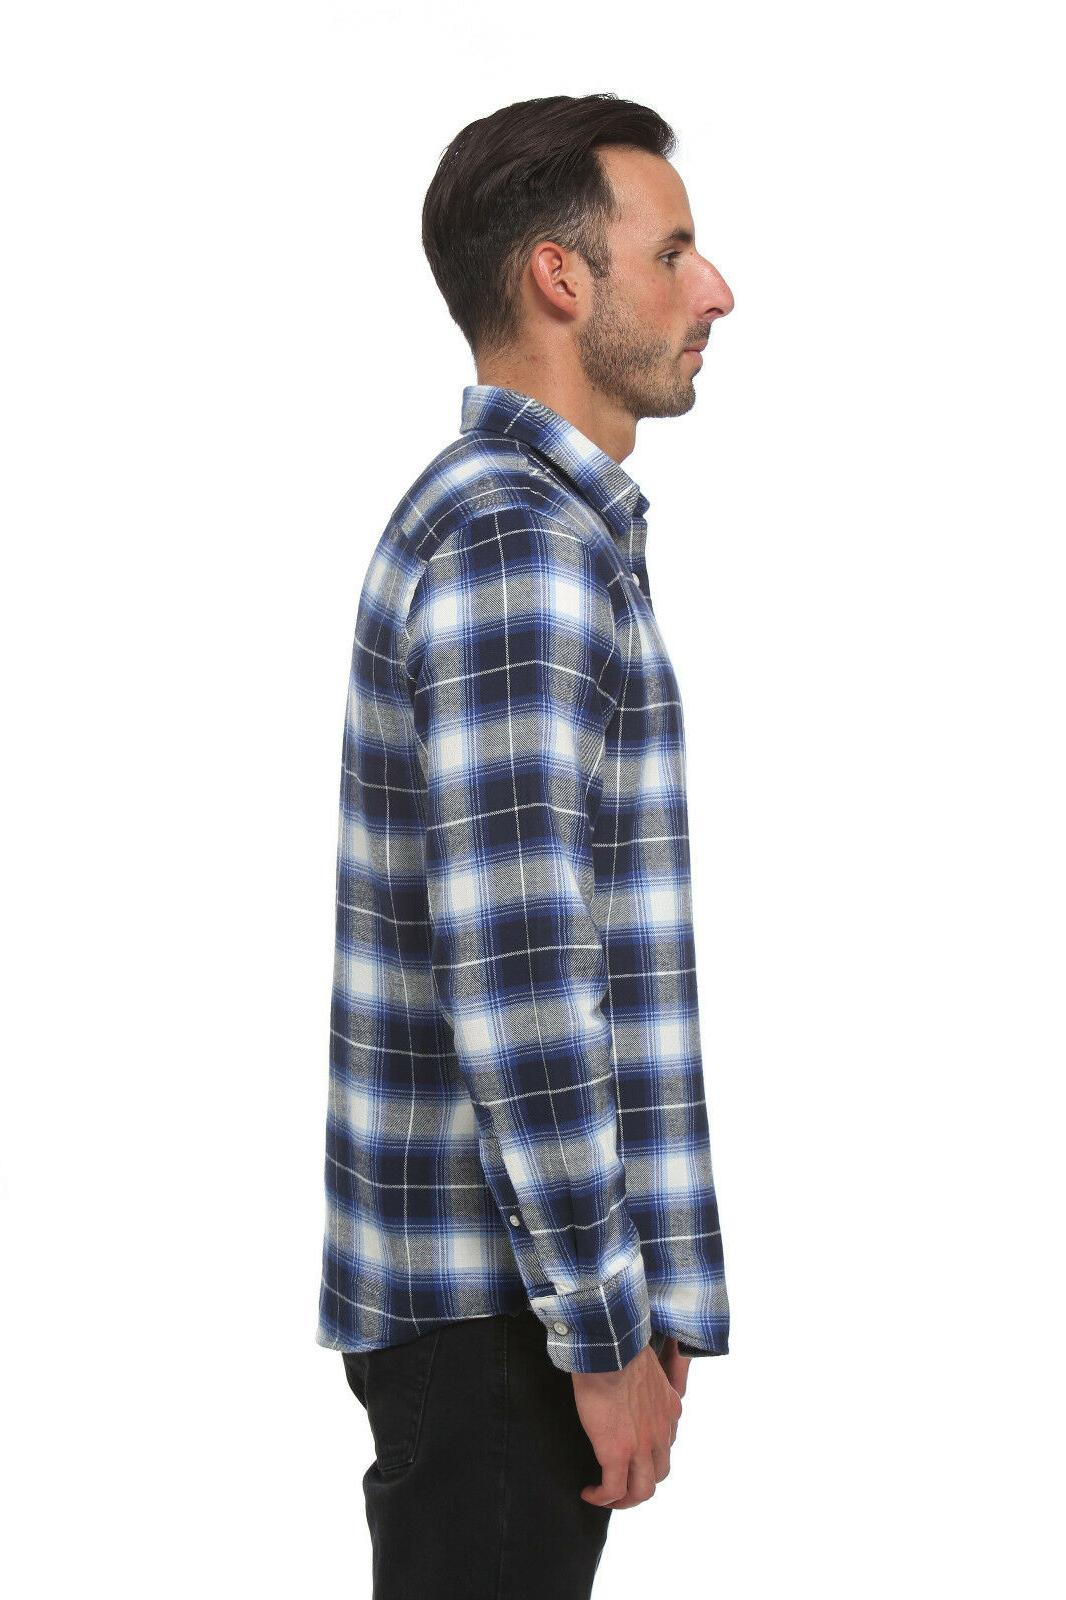 Elevani Sleeve Regular Fit Flannel Casual White/Navy